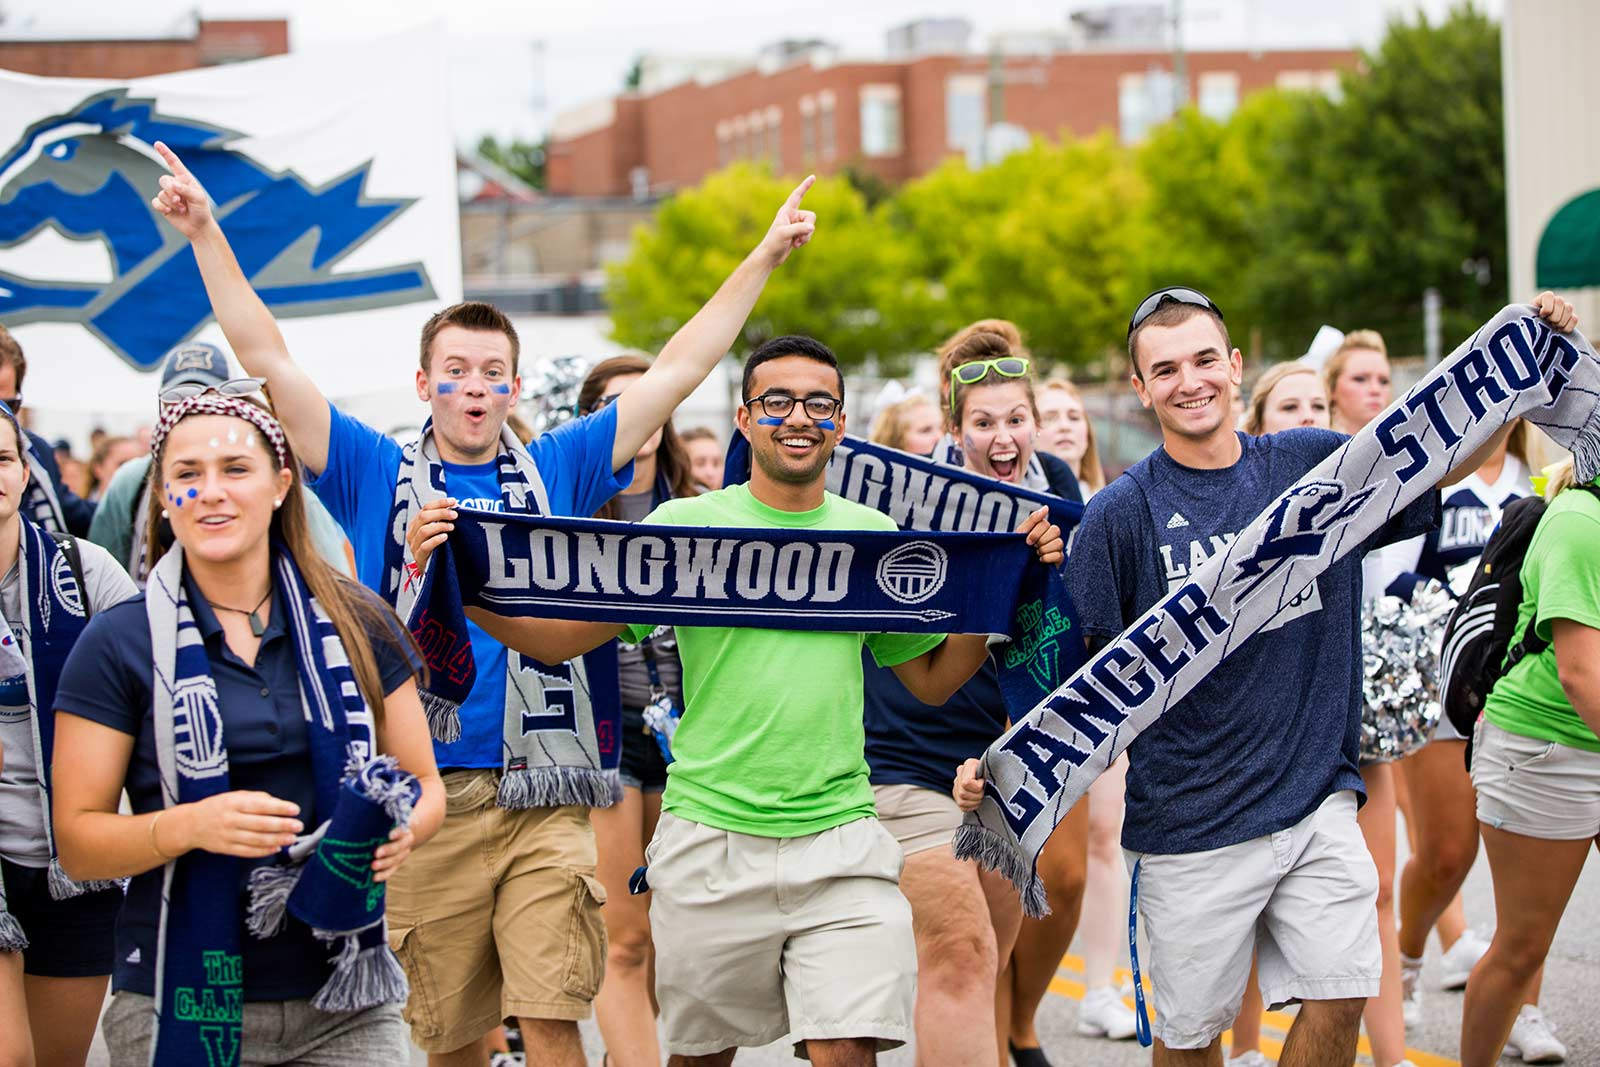 We kick off the new academic year by walking through downtown showing off our Lancer pride at The G.A.M.E. (Greatest Athletics March Ever). Don't forget to grab your Longwood Scarf!